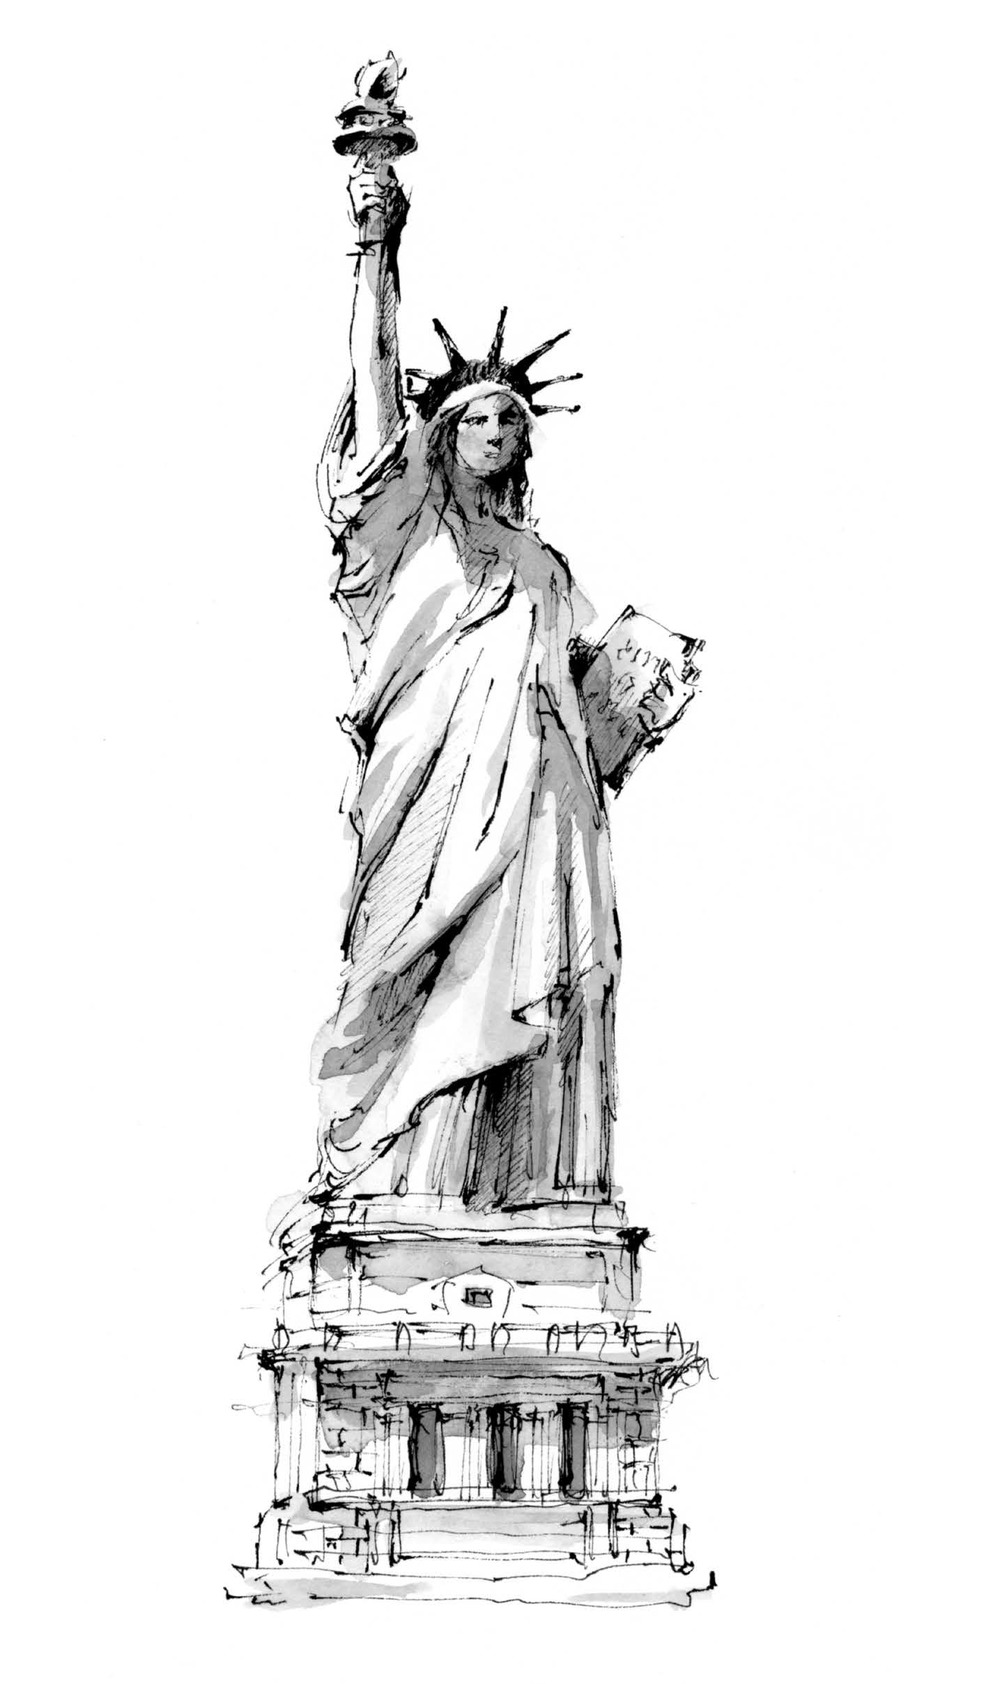 statue of liberty drawings free statue of liberty clipart download free clip art drawings liberty statue of